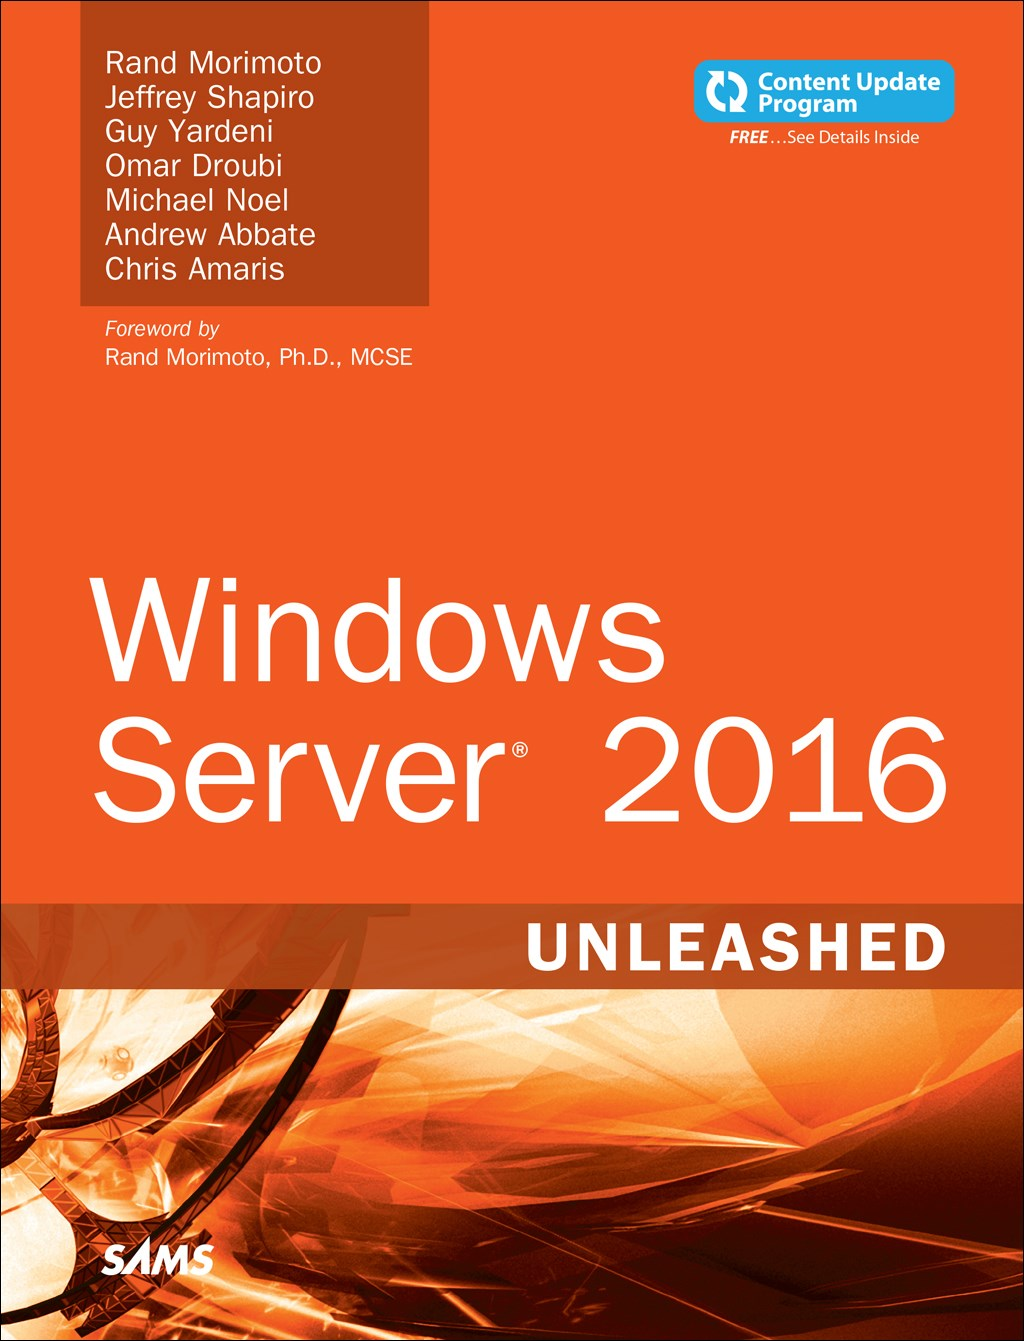 Windows Server 2016 Unleashed (includes Content Update Program)